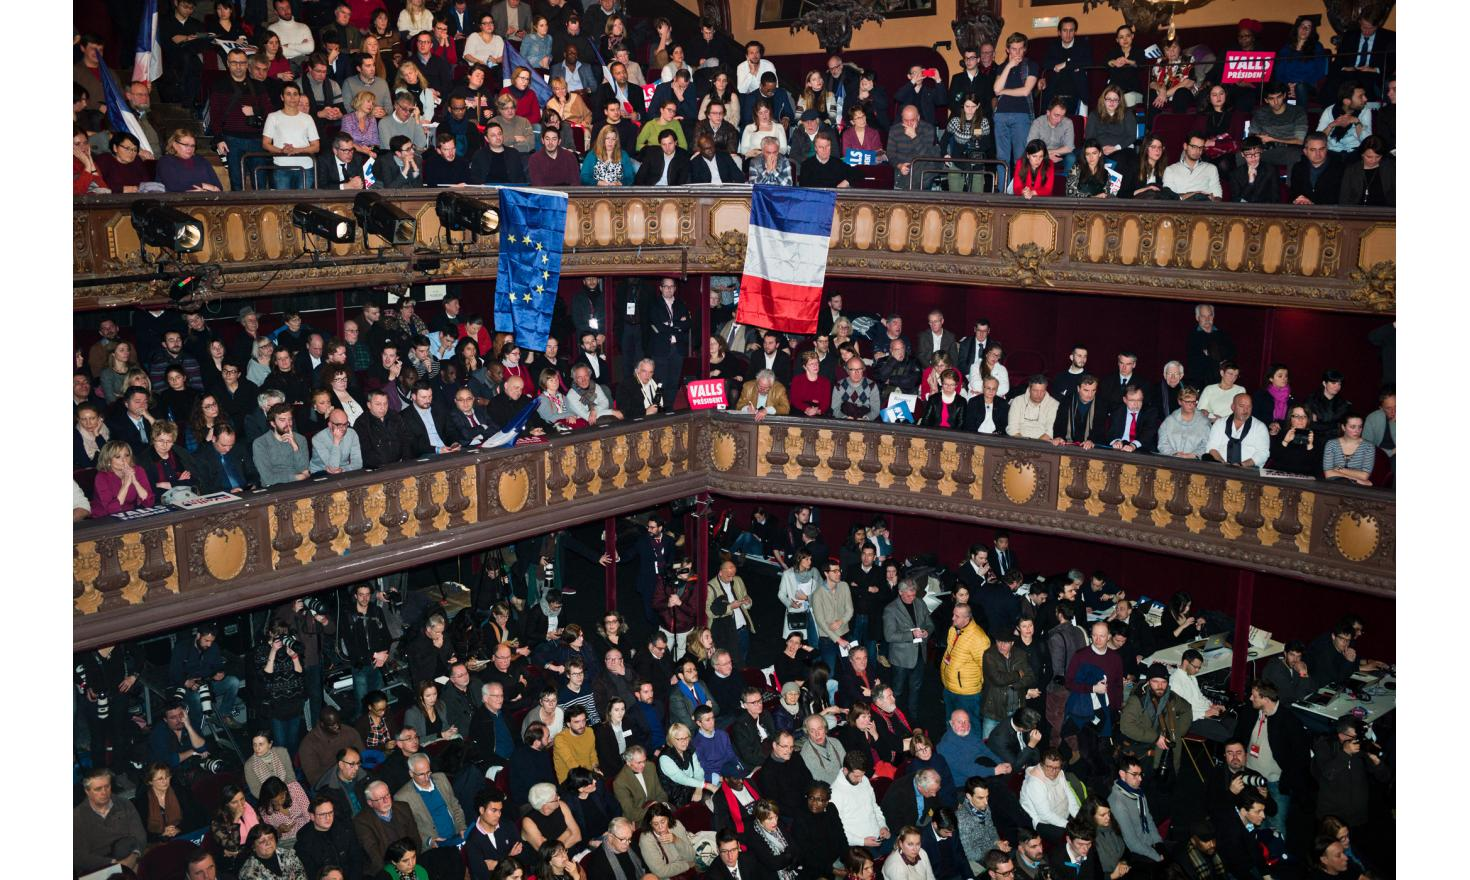 Parisian meeting of Manuel Valls at the Trianon in Paris during the first round of the PS primaries.